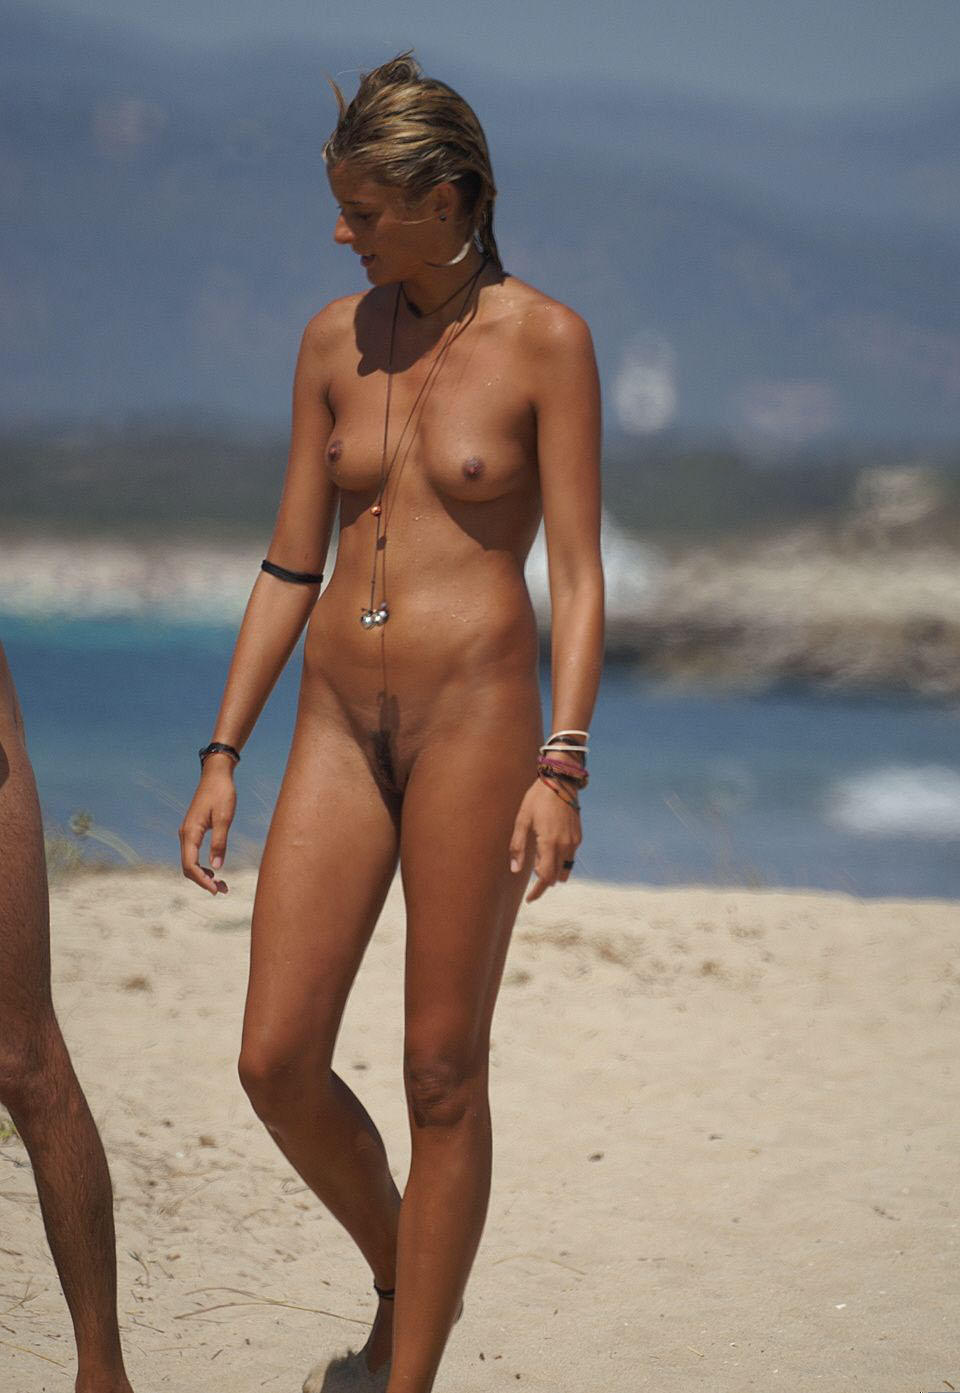 Sun tanned sultry mistress checking out someones ass